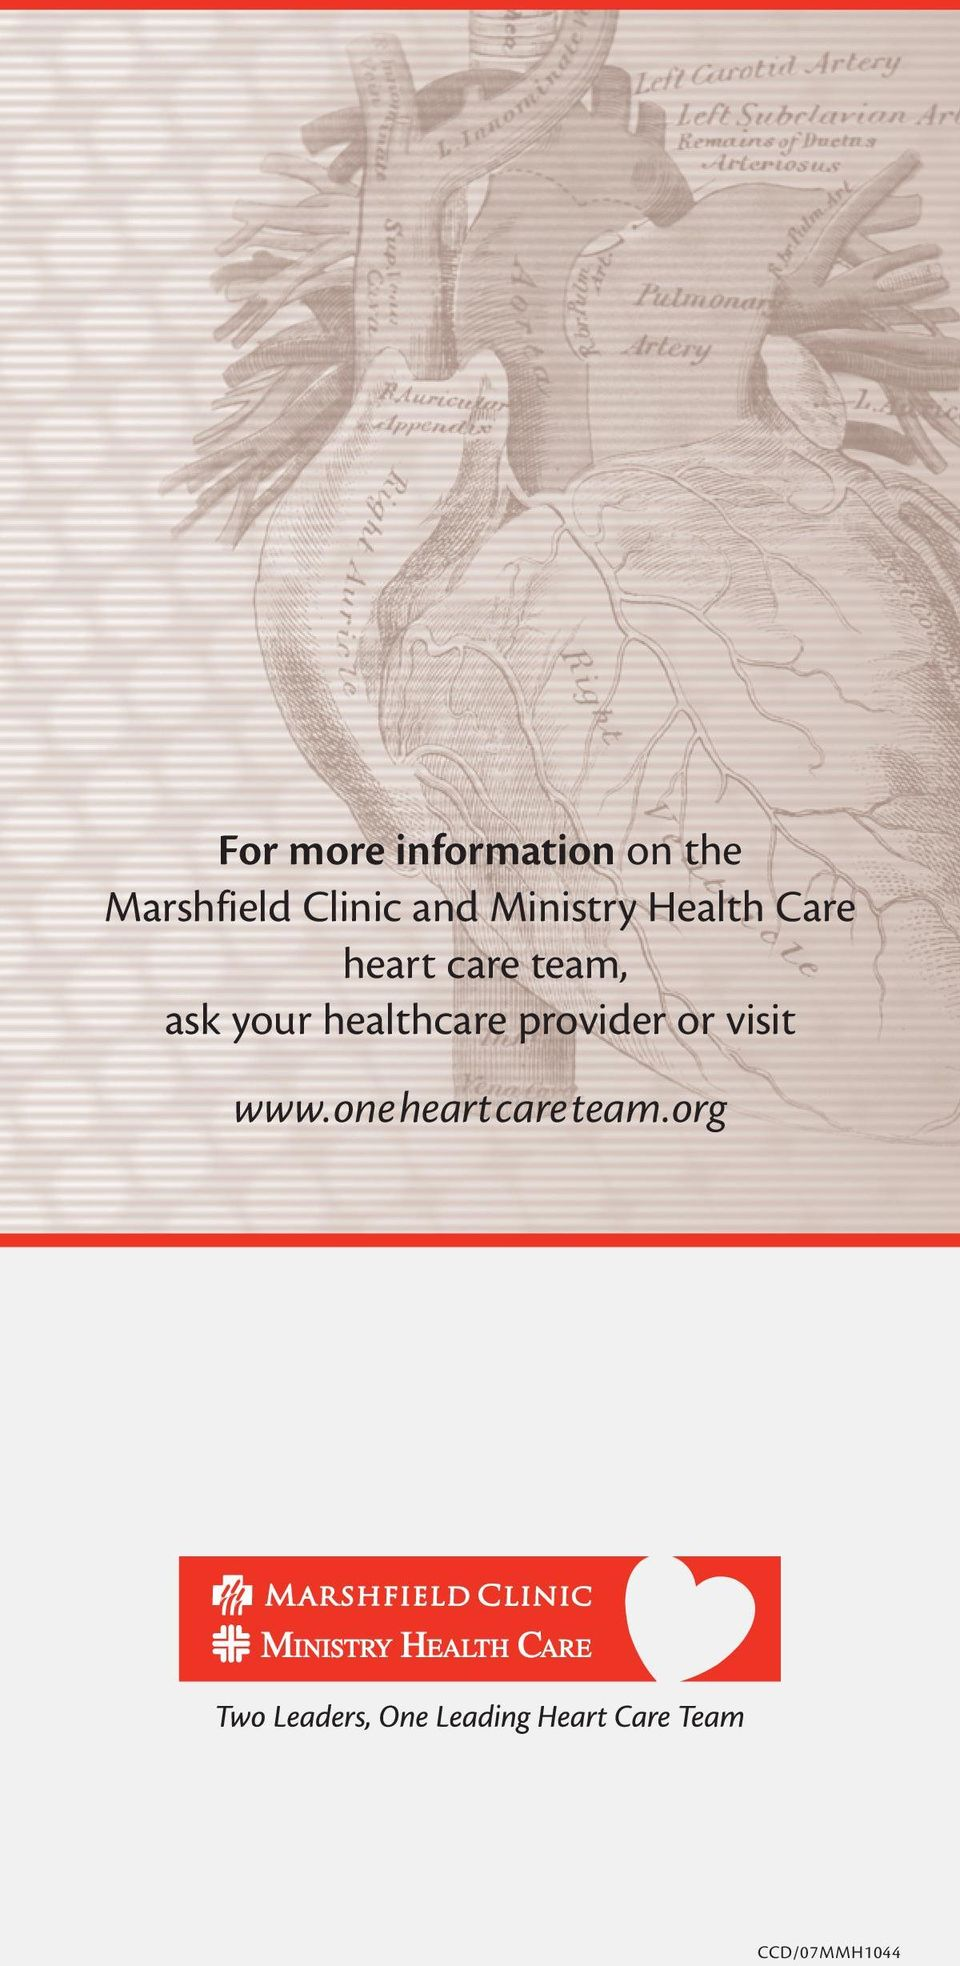 care team, ask your healthcare provider